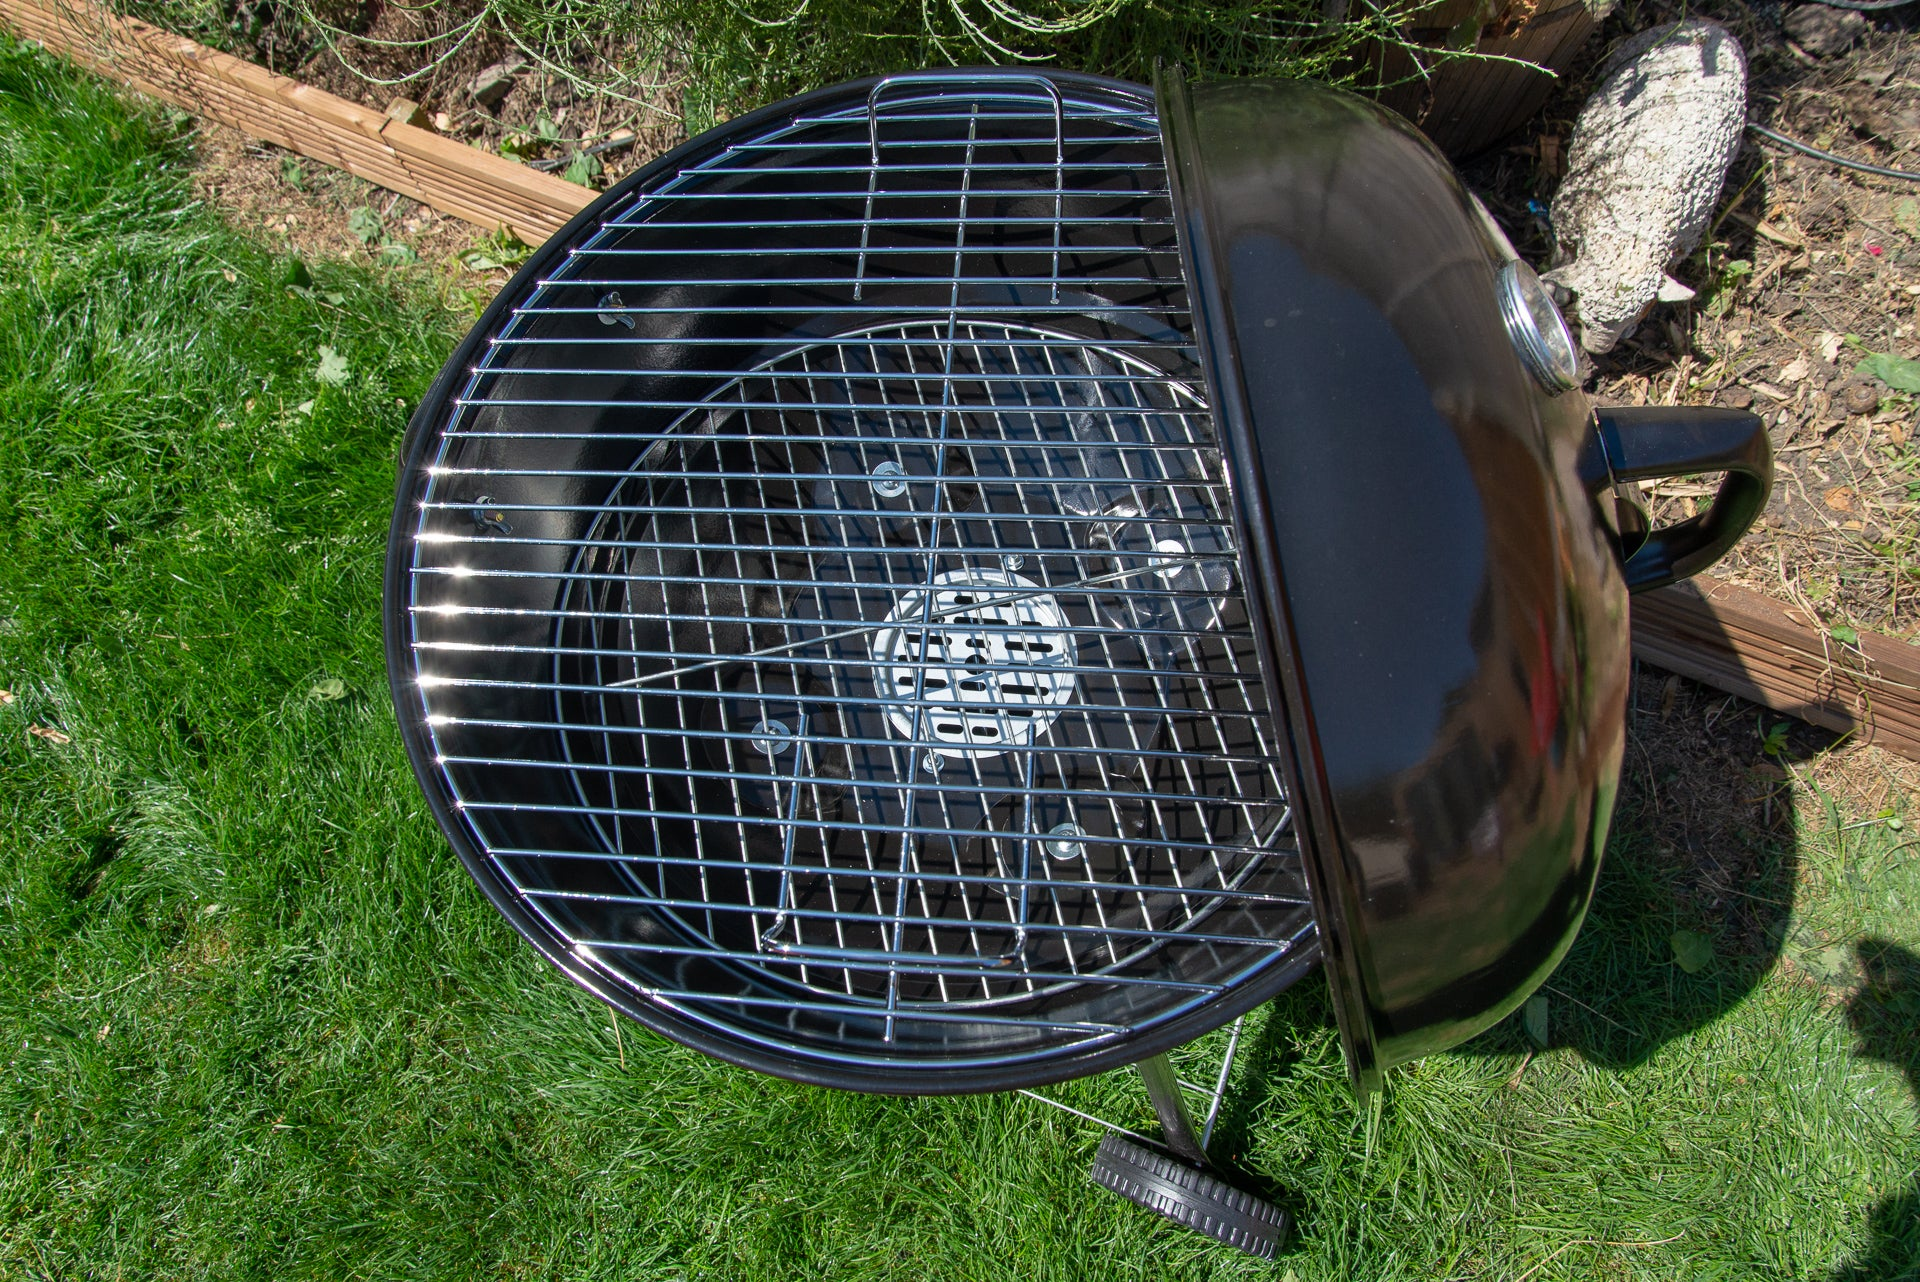 George Foreman Kettle Charcoal BBQ charcoal area